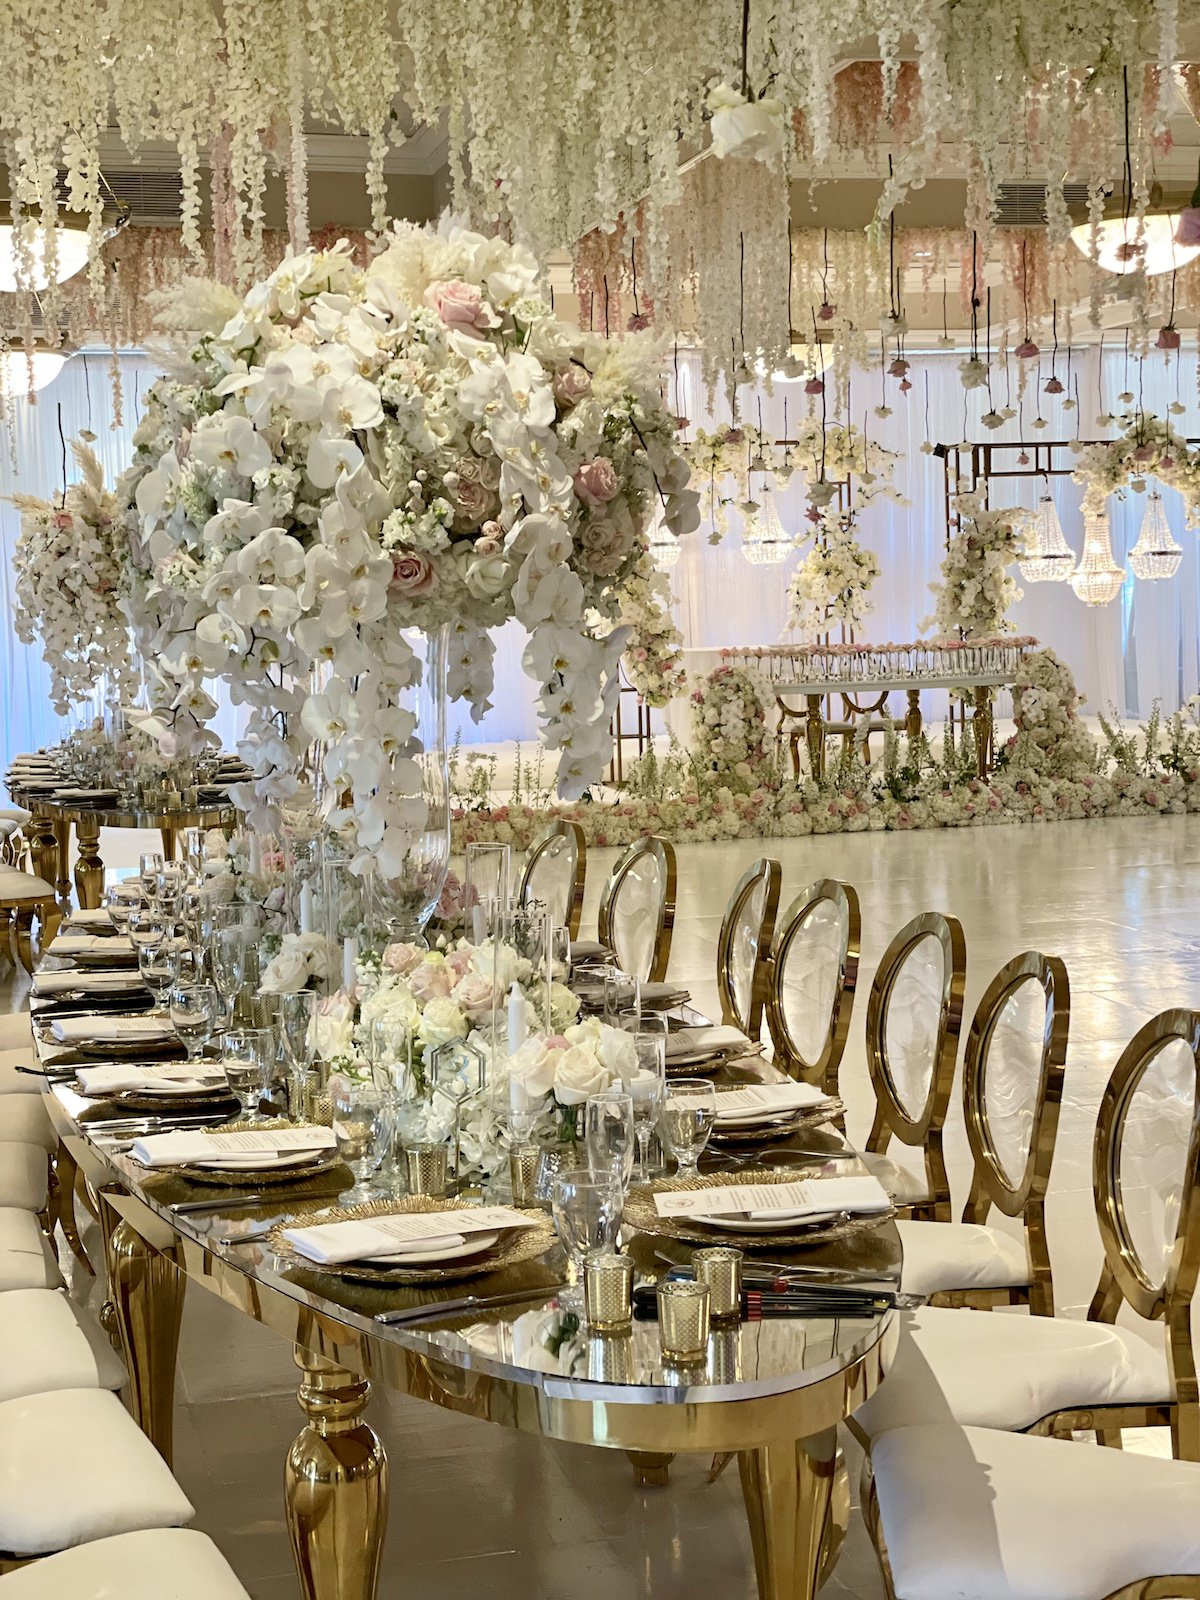 Luxury wedding reception decor with hanging flowers - FLowers by Edgar